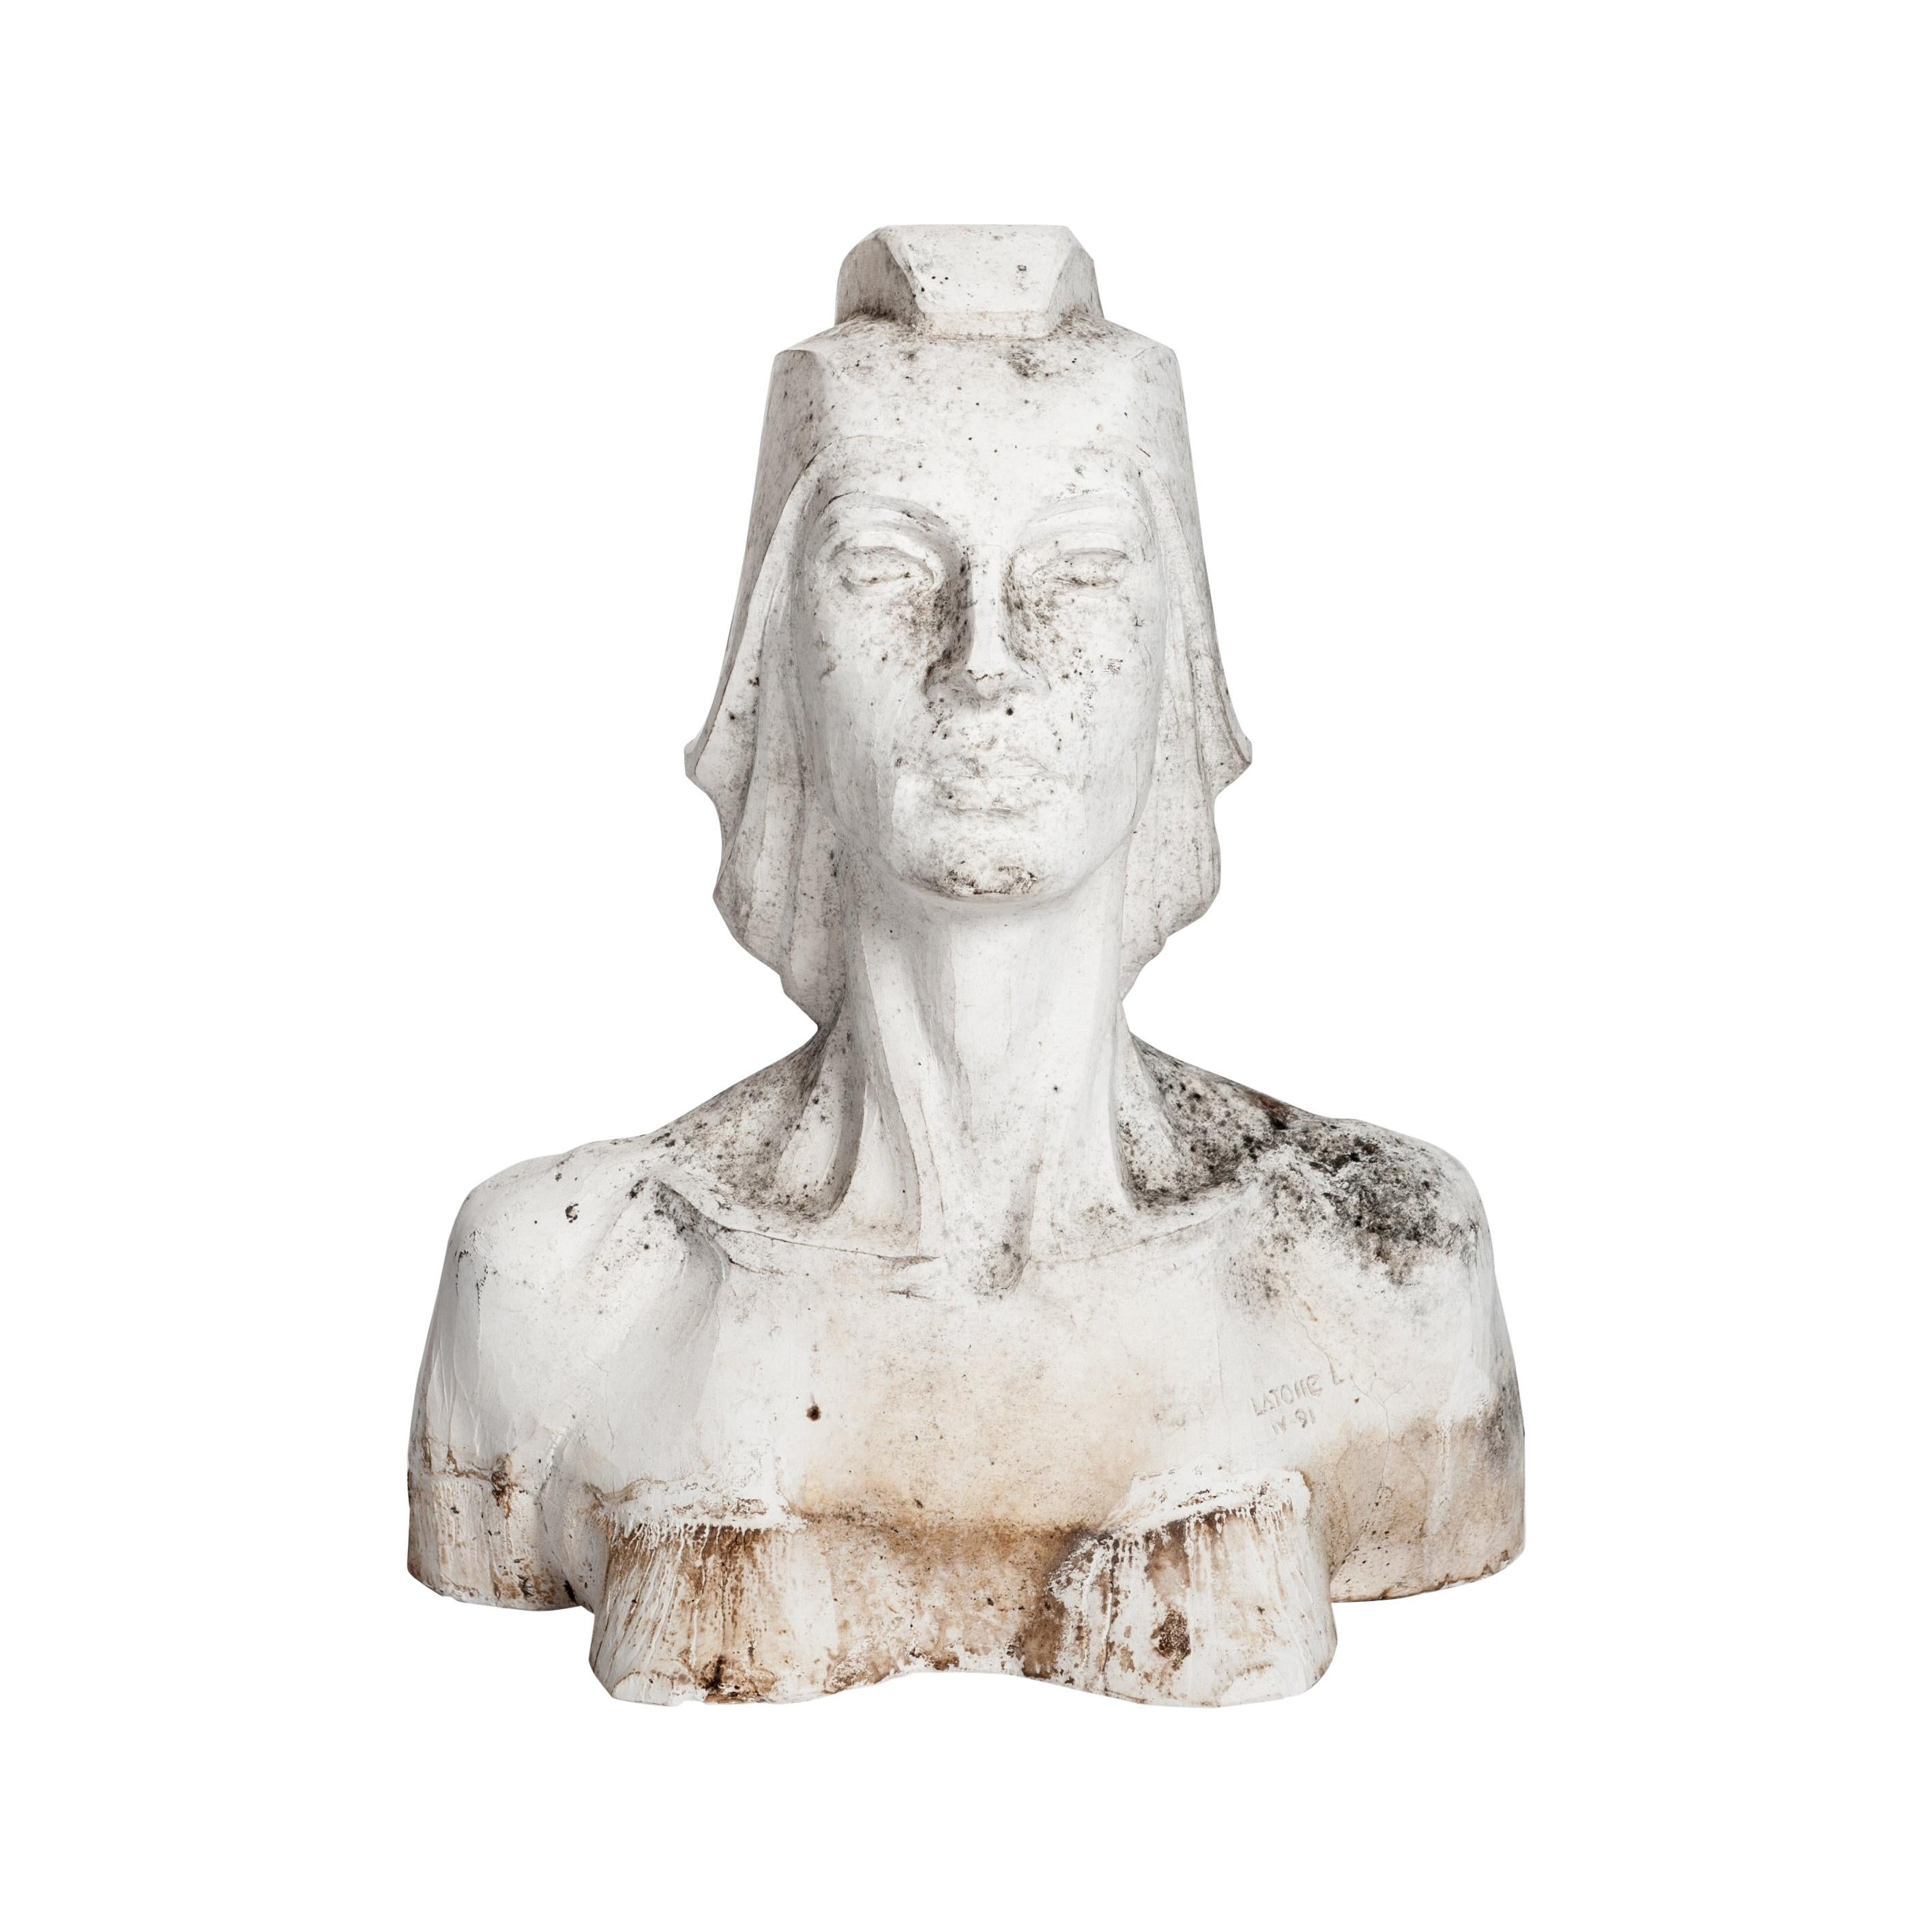 Modern Plaster Female Bust, Sculpture White Colored by Lucita Latorre, 1991